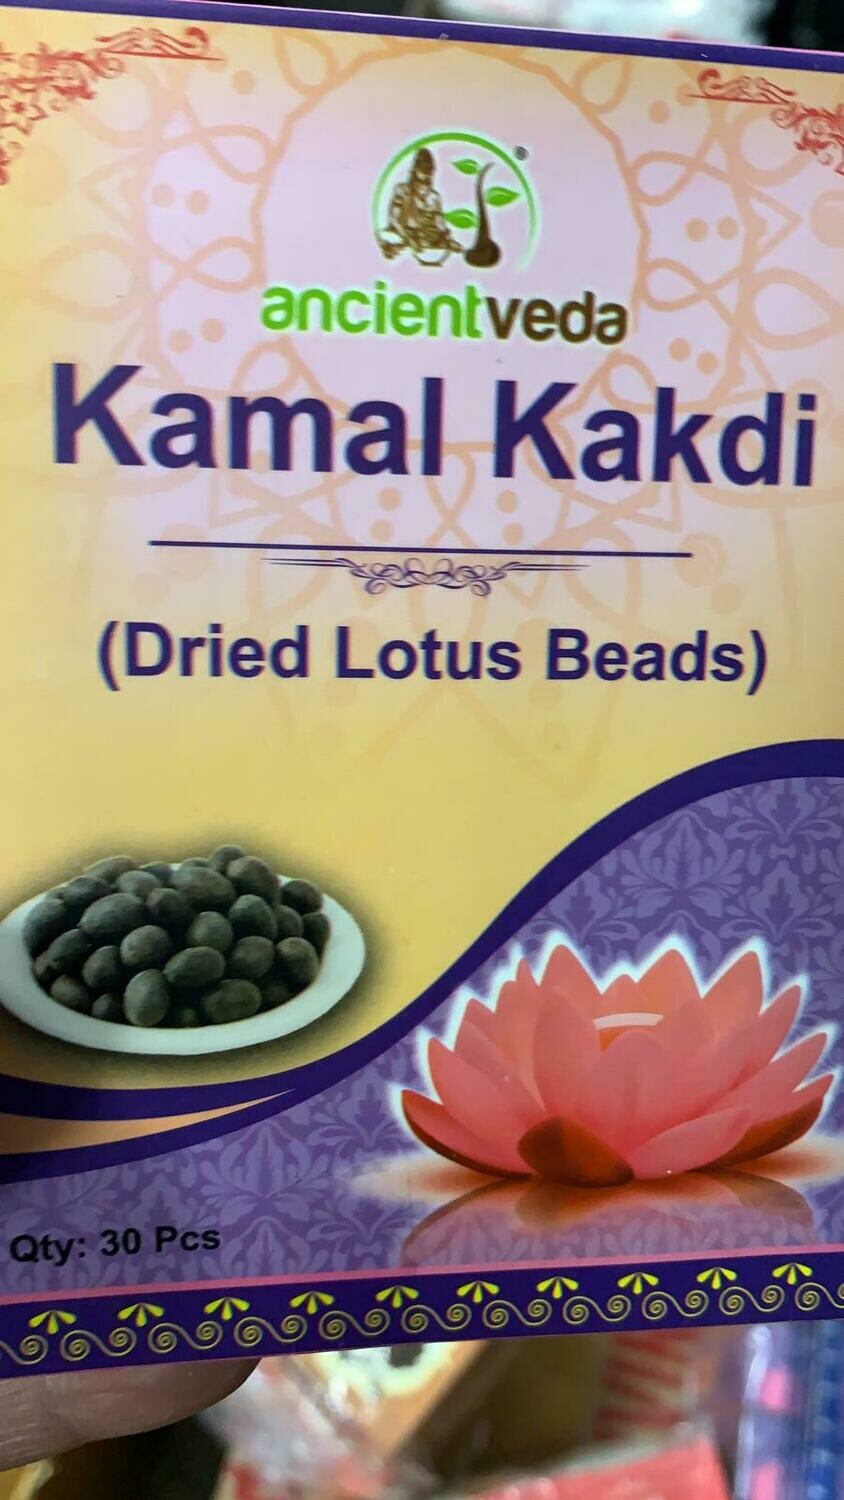 ANCIENT VEDA KAMAL KAKDI 30pcs